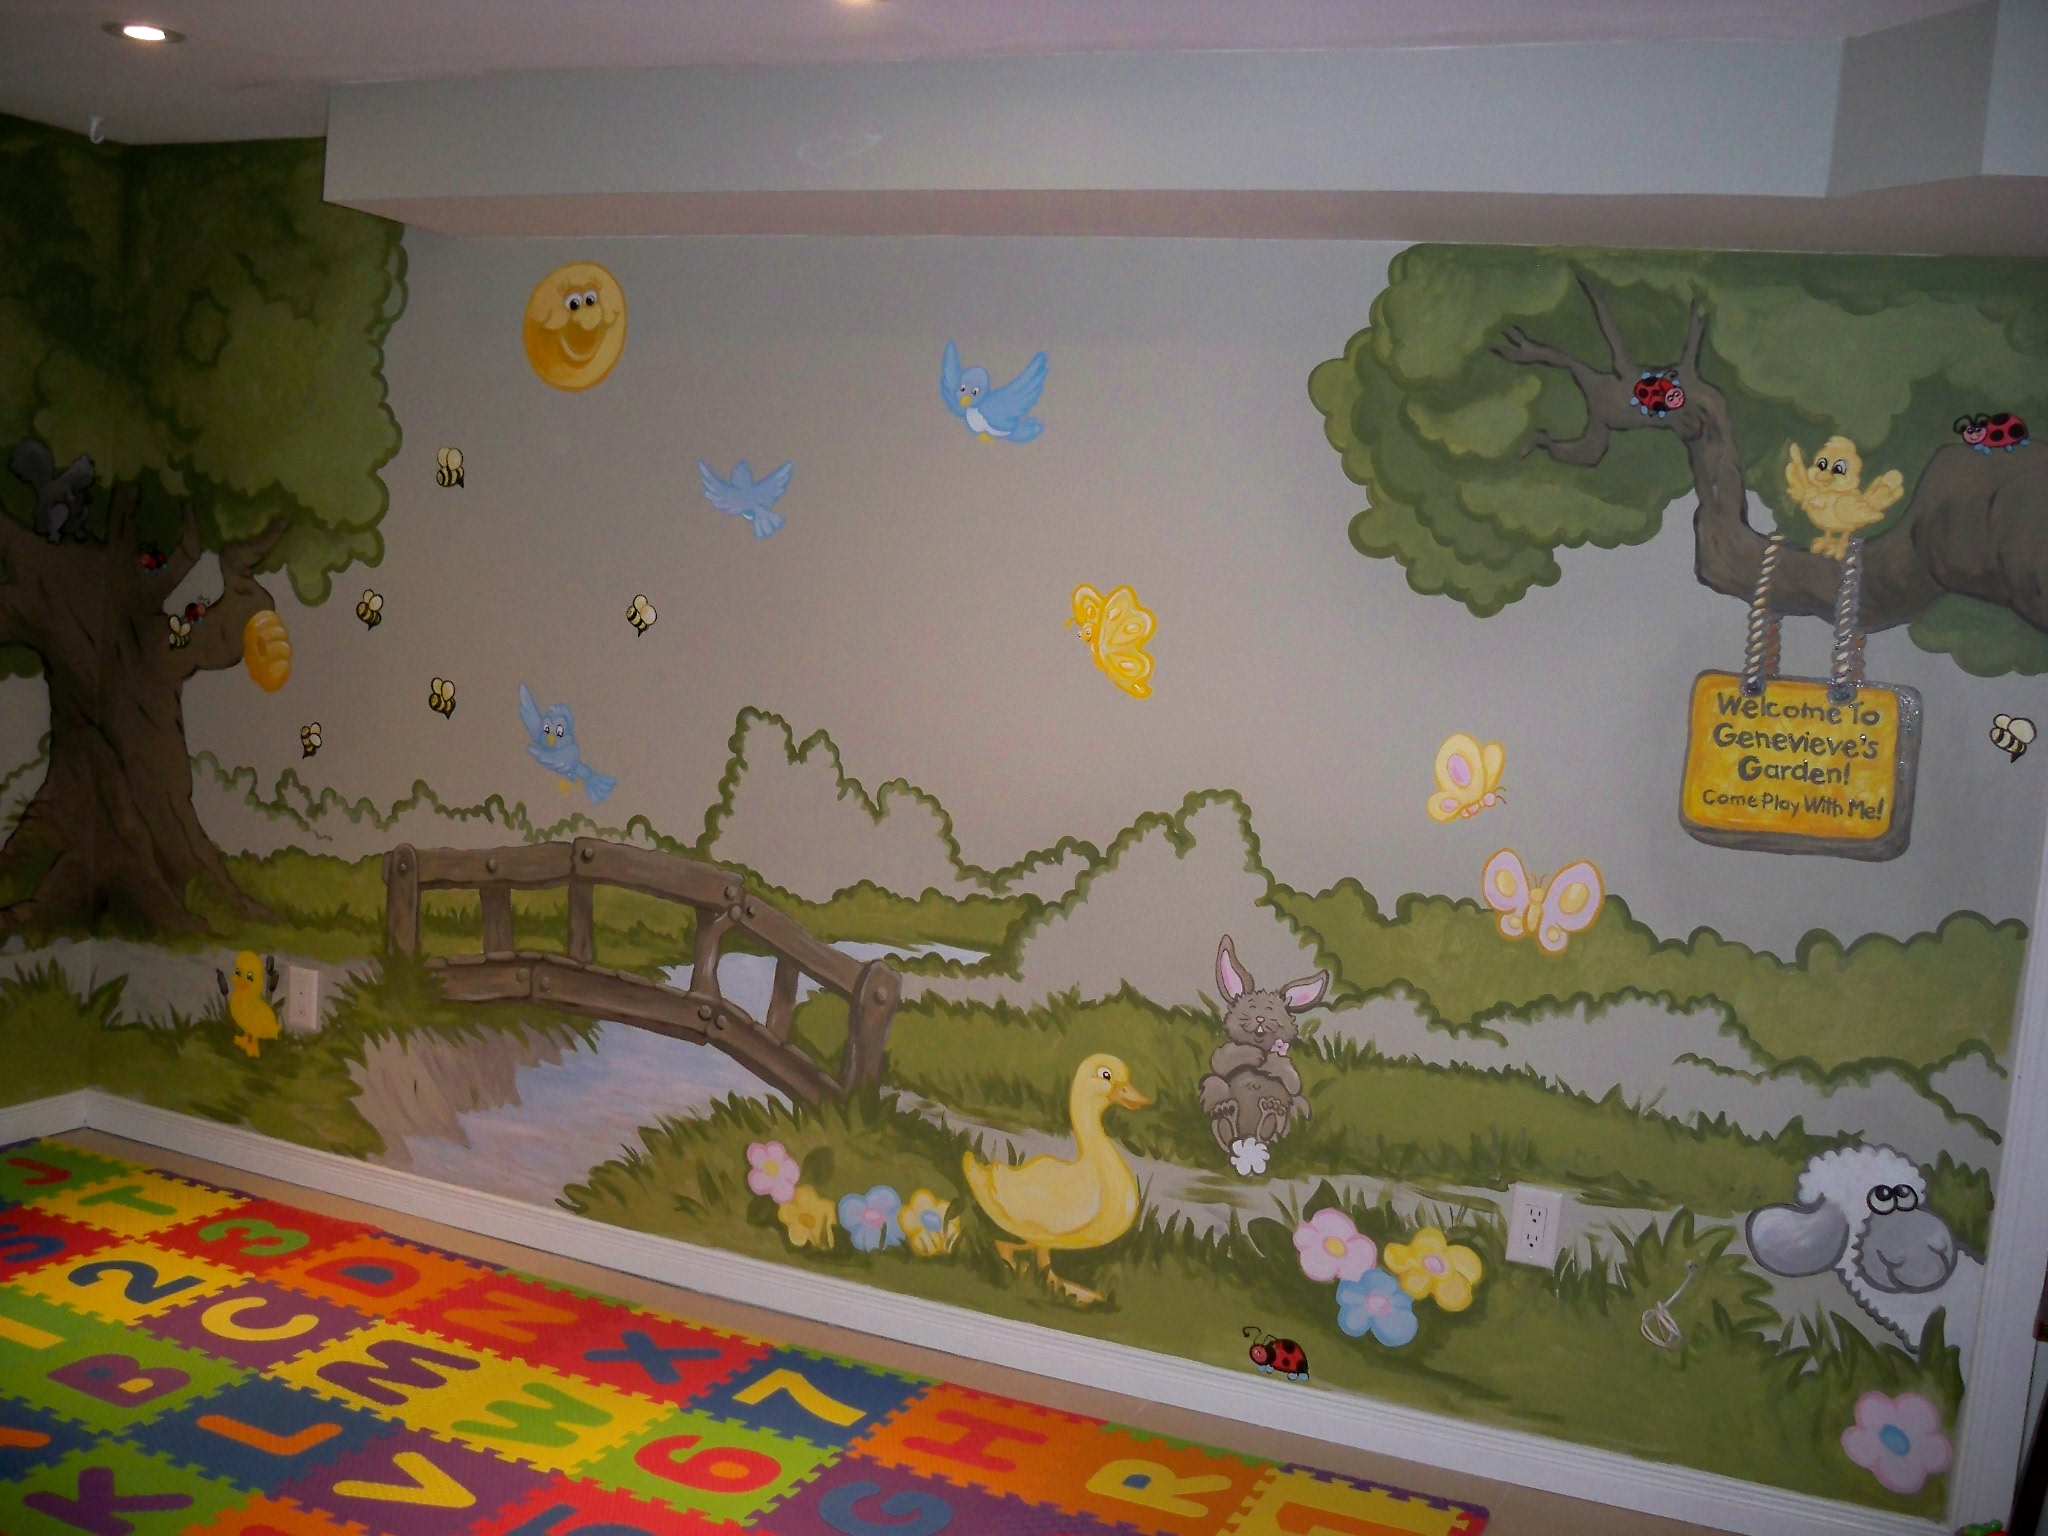 Murals By Marg Genevieve's Playroom Mural 6.JPG